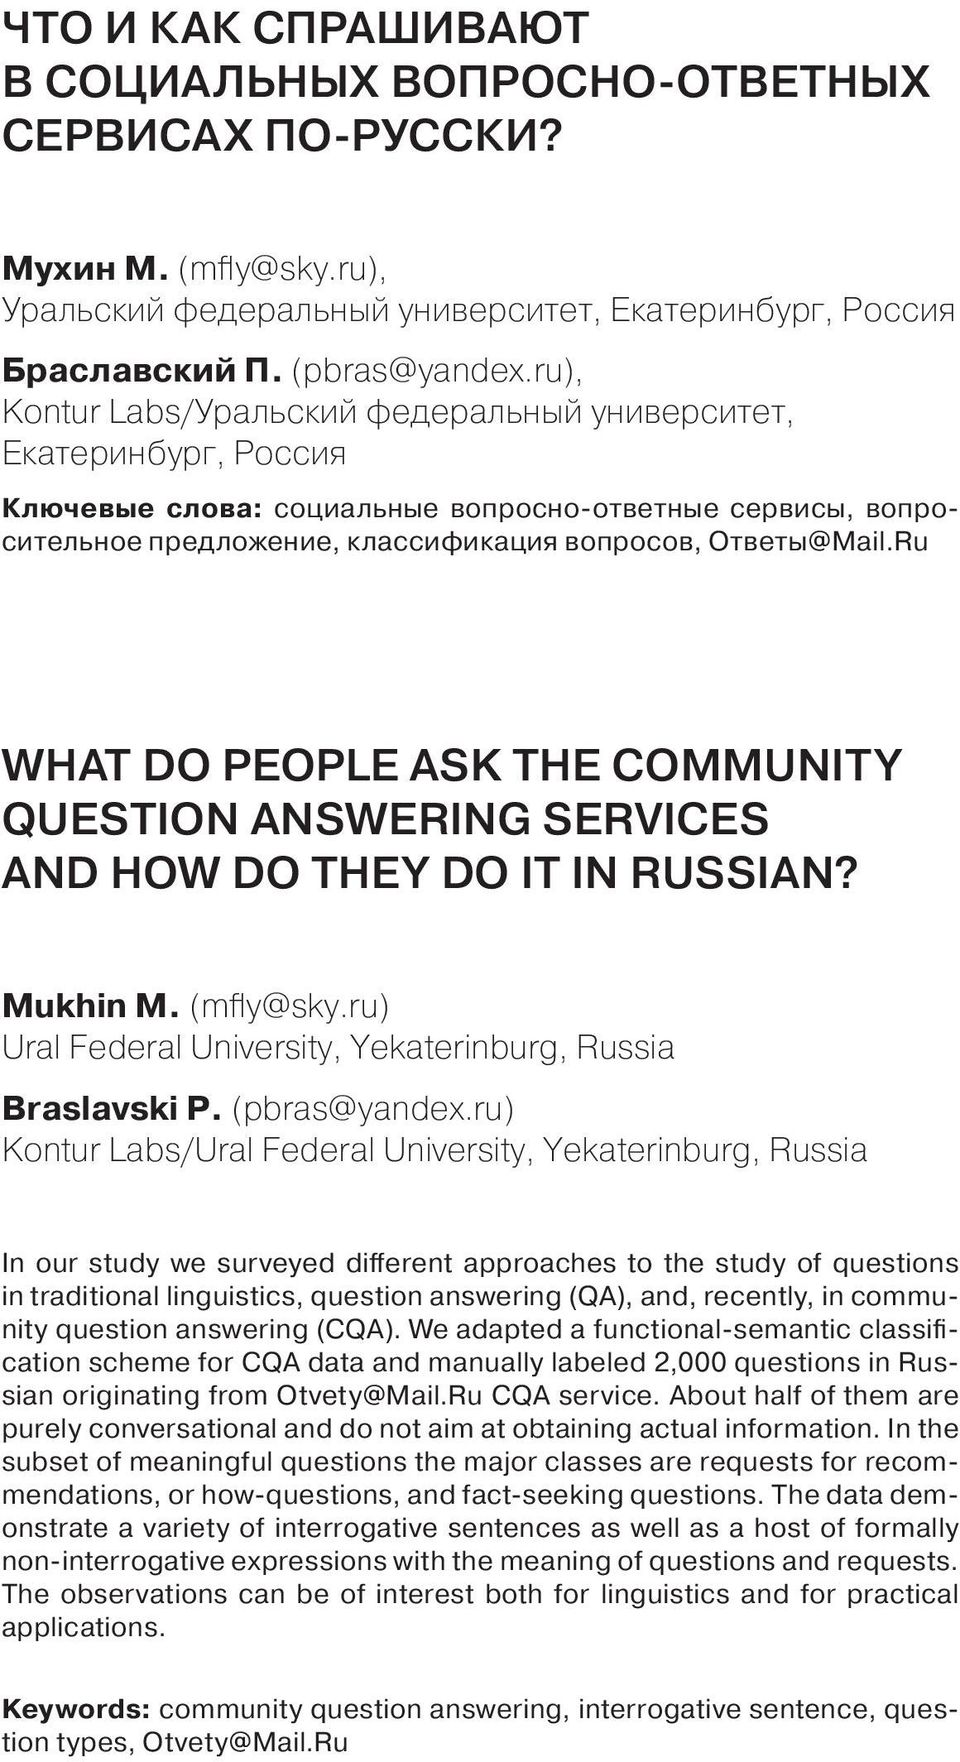 Ru What do people ask the community question answering services and how do they do it in Russian? Mukhin M. (mfly@sky.ru) Ural Federal University, Yekaterinburg, Russia Braslavski P. (pbras@yandex.